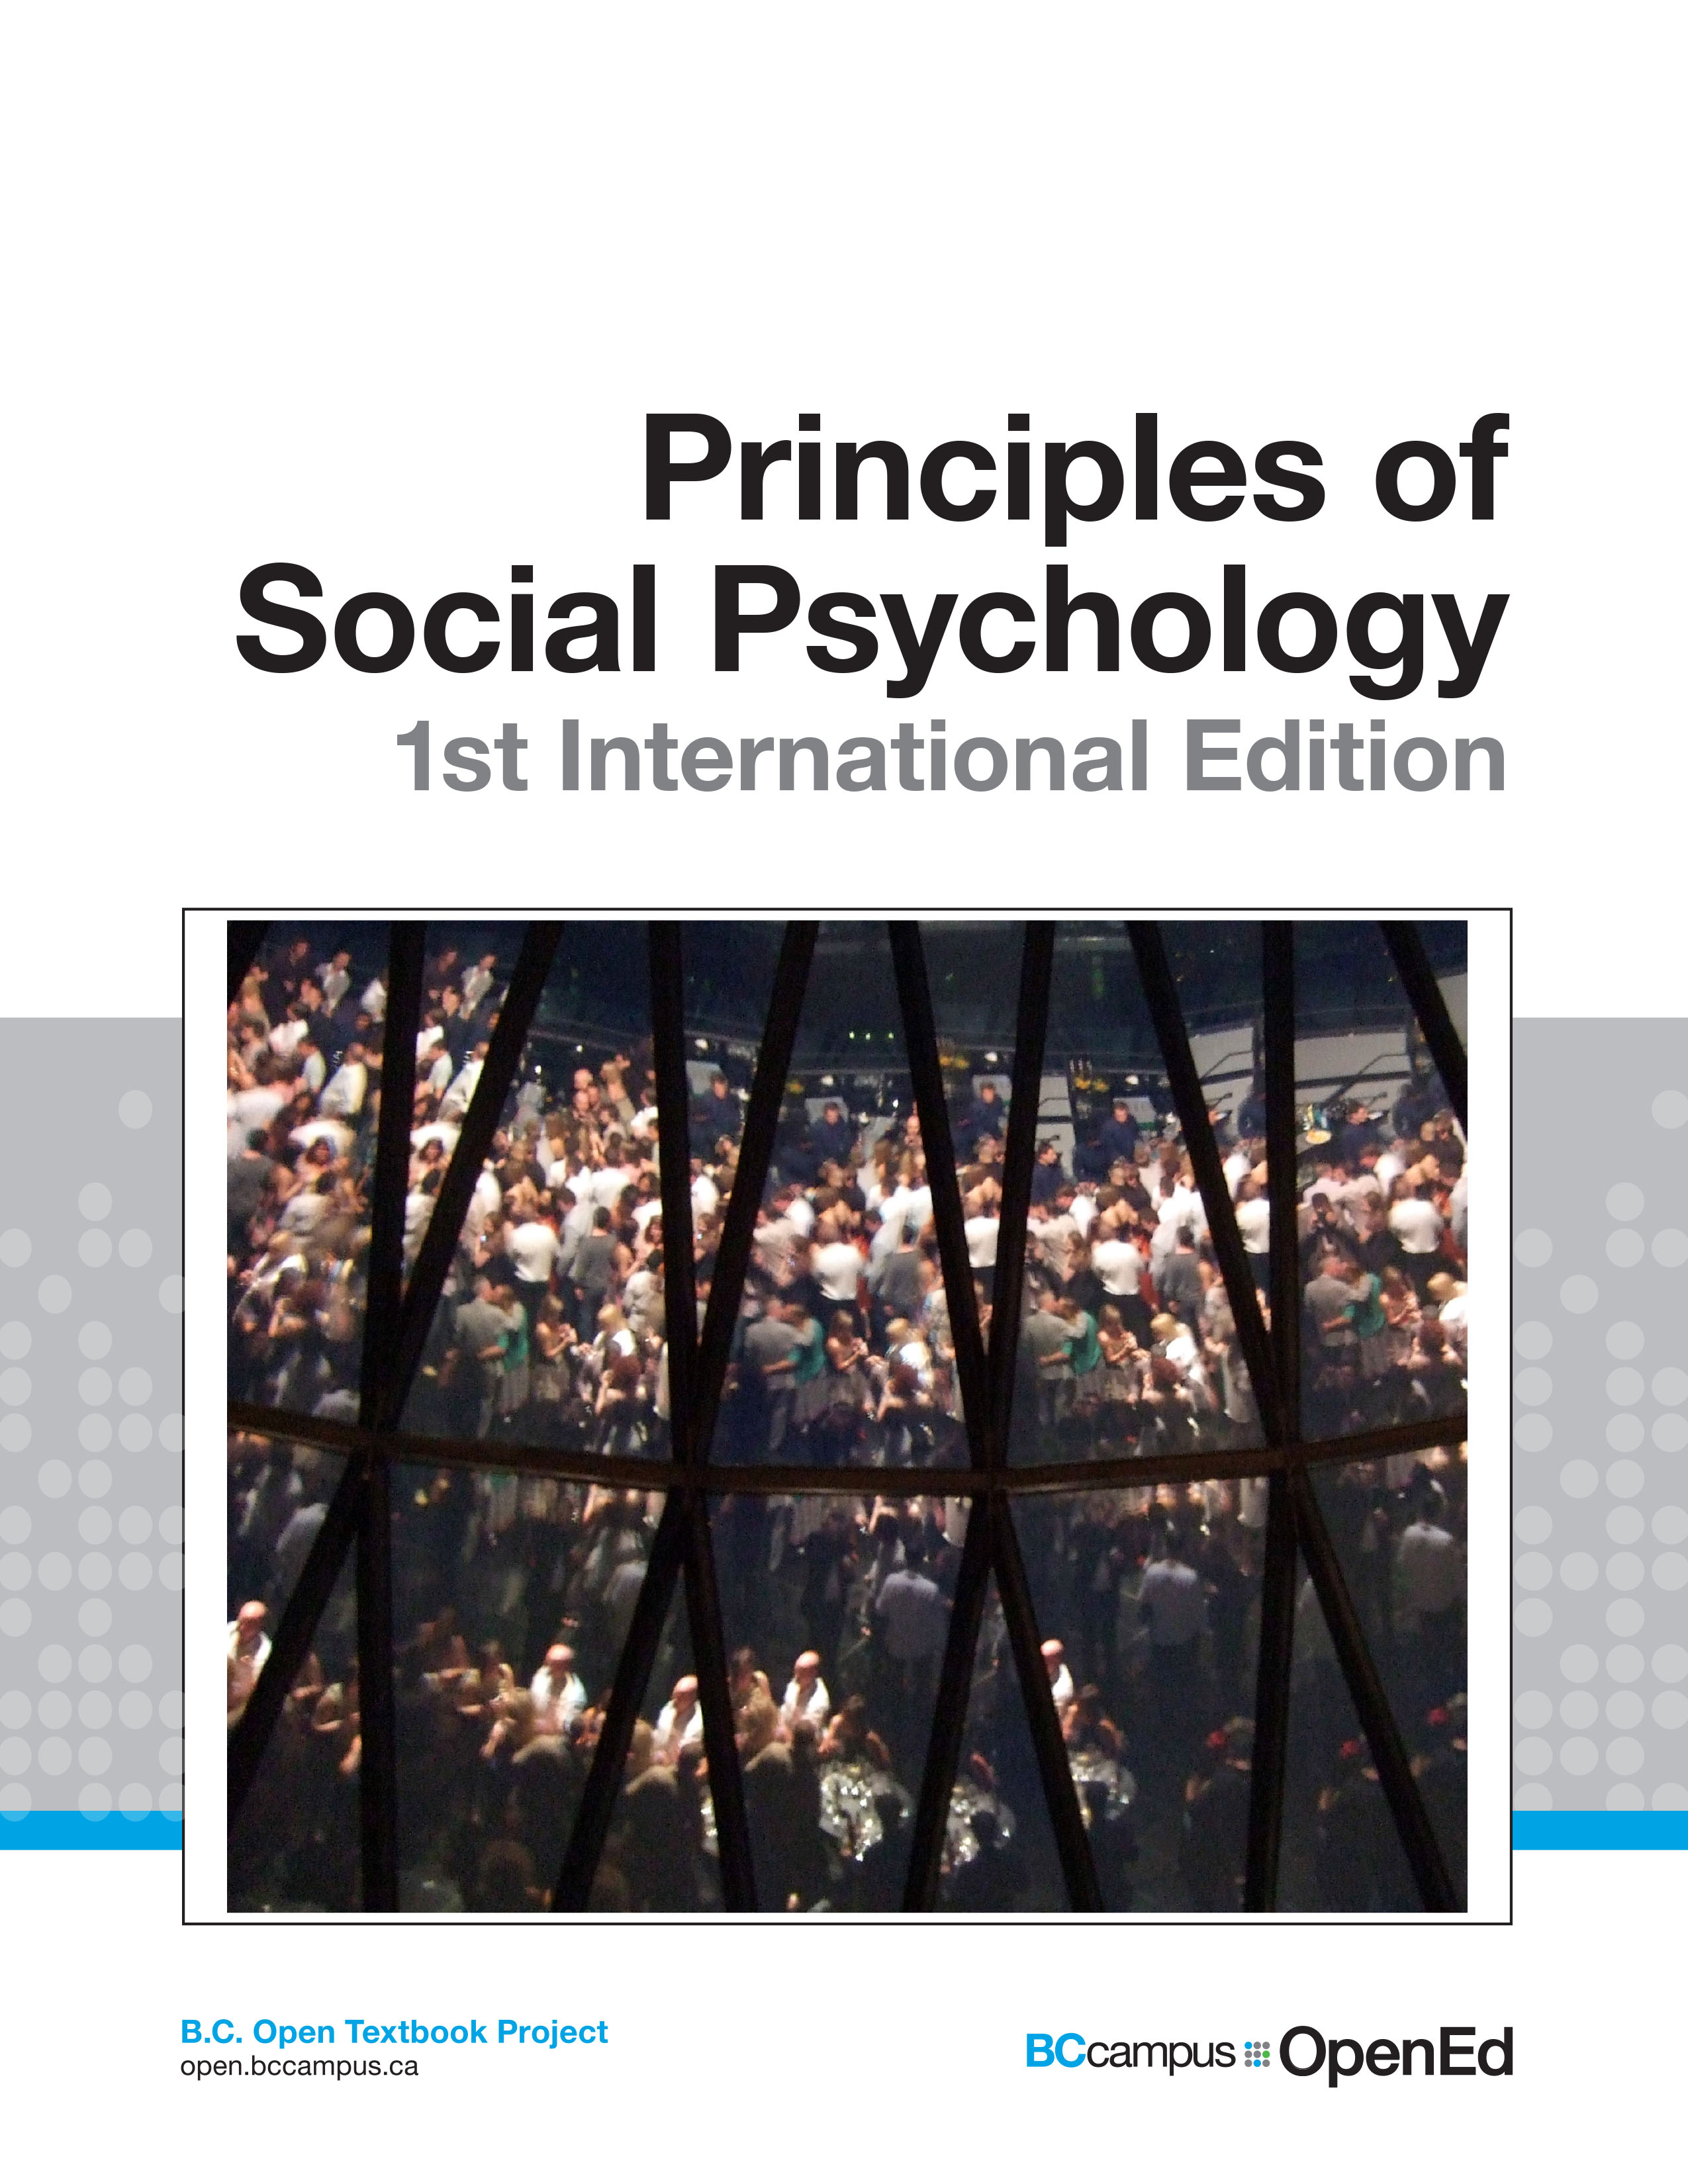 principles of social psychology essay What are some good examples of psychological principles many websites that offer white papers or other what are some good examples of social psychology.